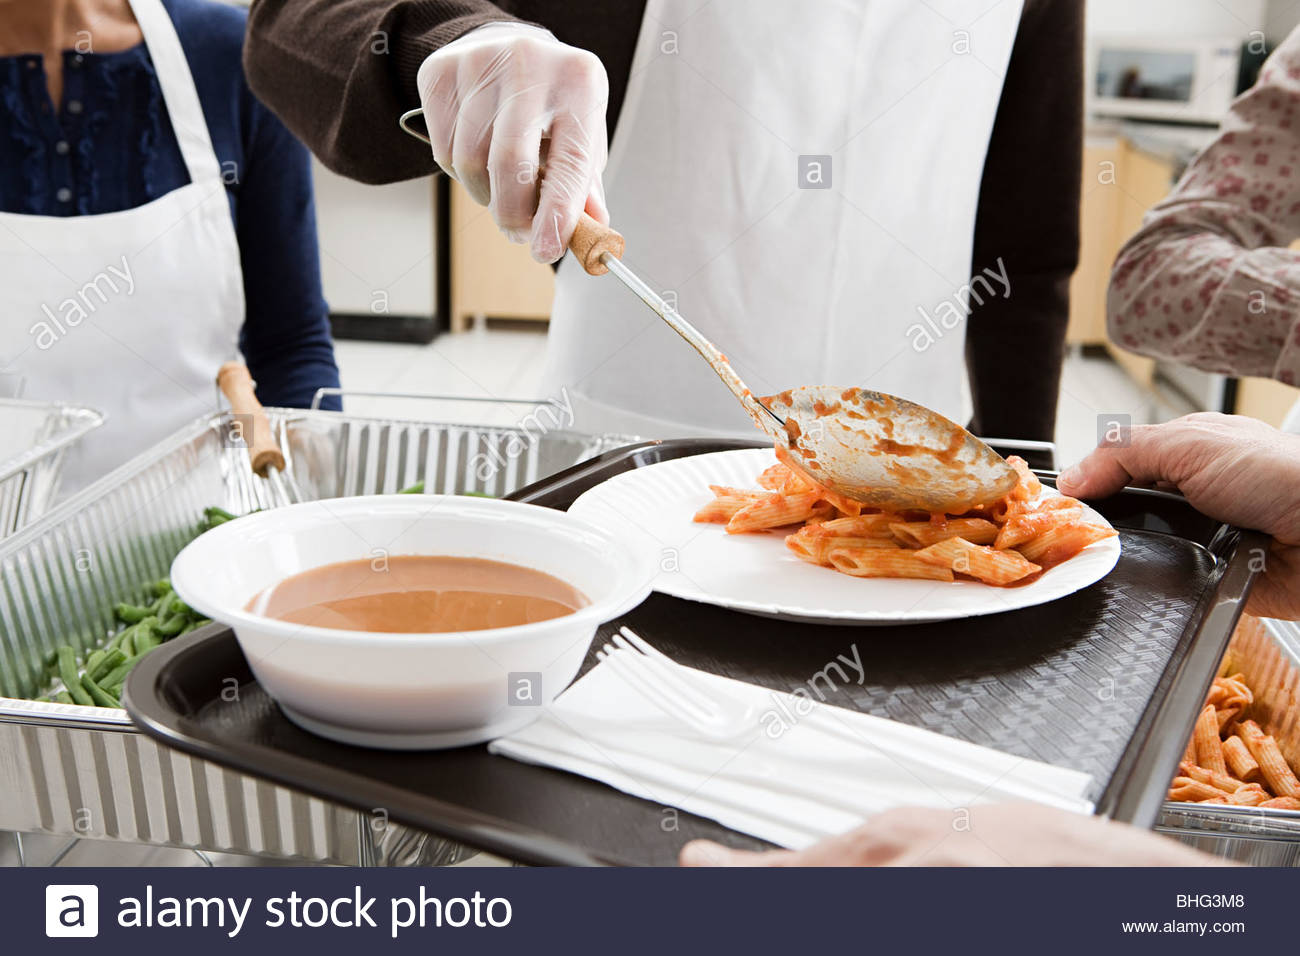 Being Served Stock Photos & Being Served Stock Images - Alamy